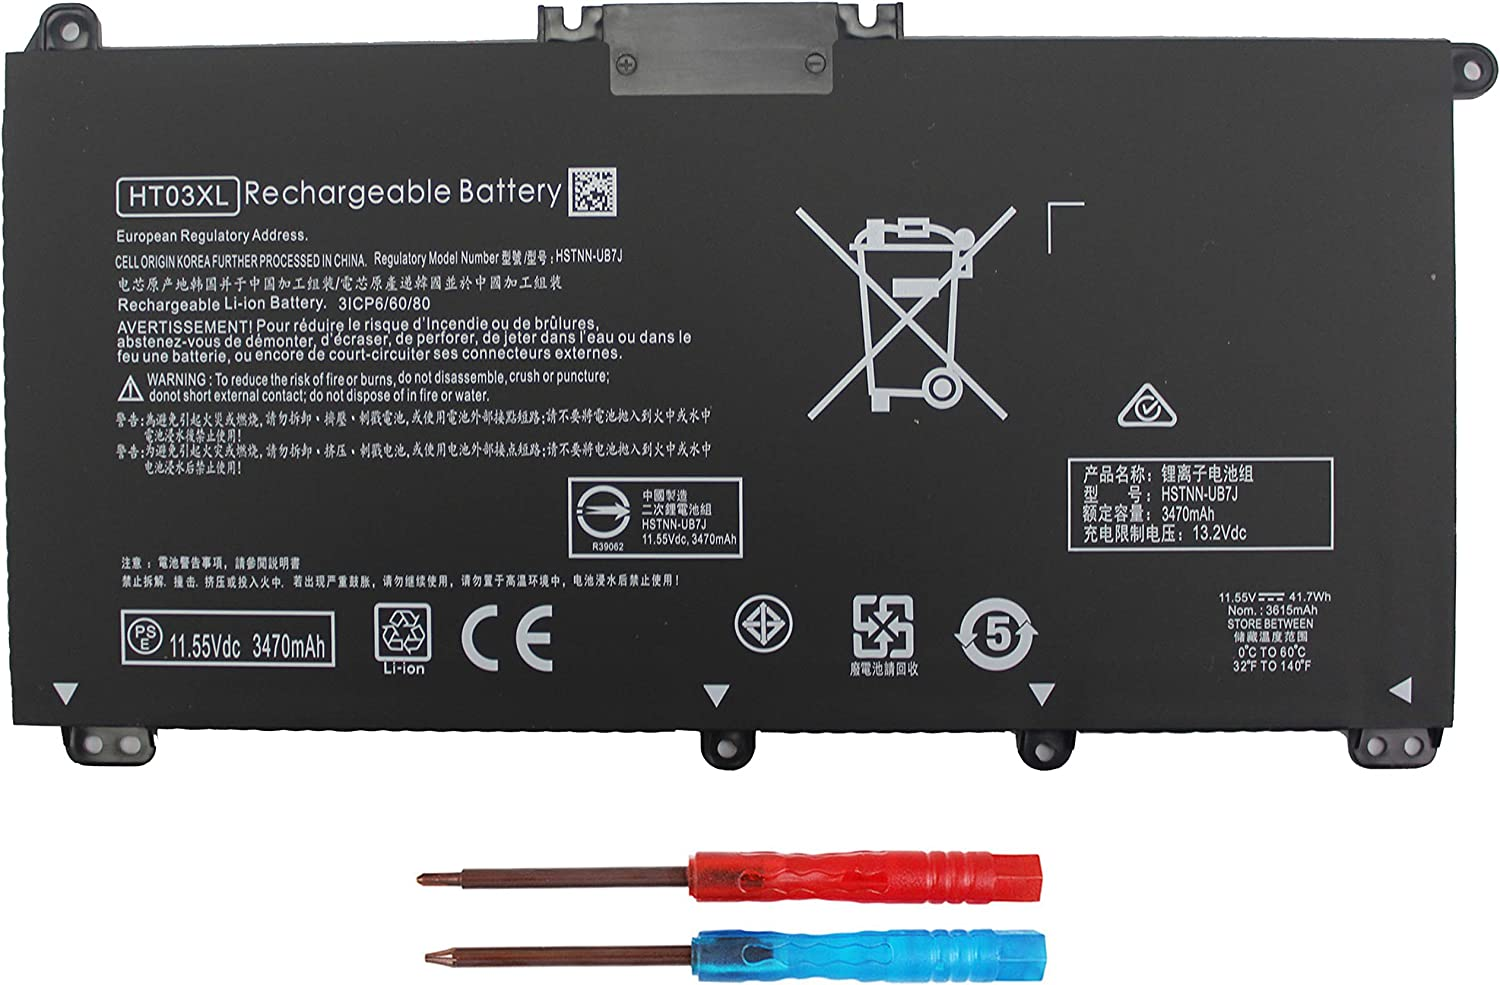 Angwel HT03XL Battery Compatible with HP Pavilion 14-CE 14-CF 14-cm 14-CK 14-DF 14-MA 15-DA 14Q-CS 15-CS 15-CW 15-DA 15-DB 17-by 17-CA HP 240 245 250 255 G7 340 348 G5[11.55V 41.7Wh]